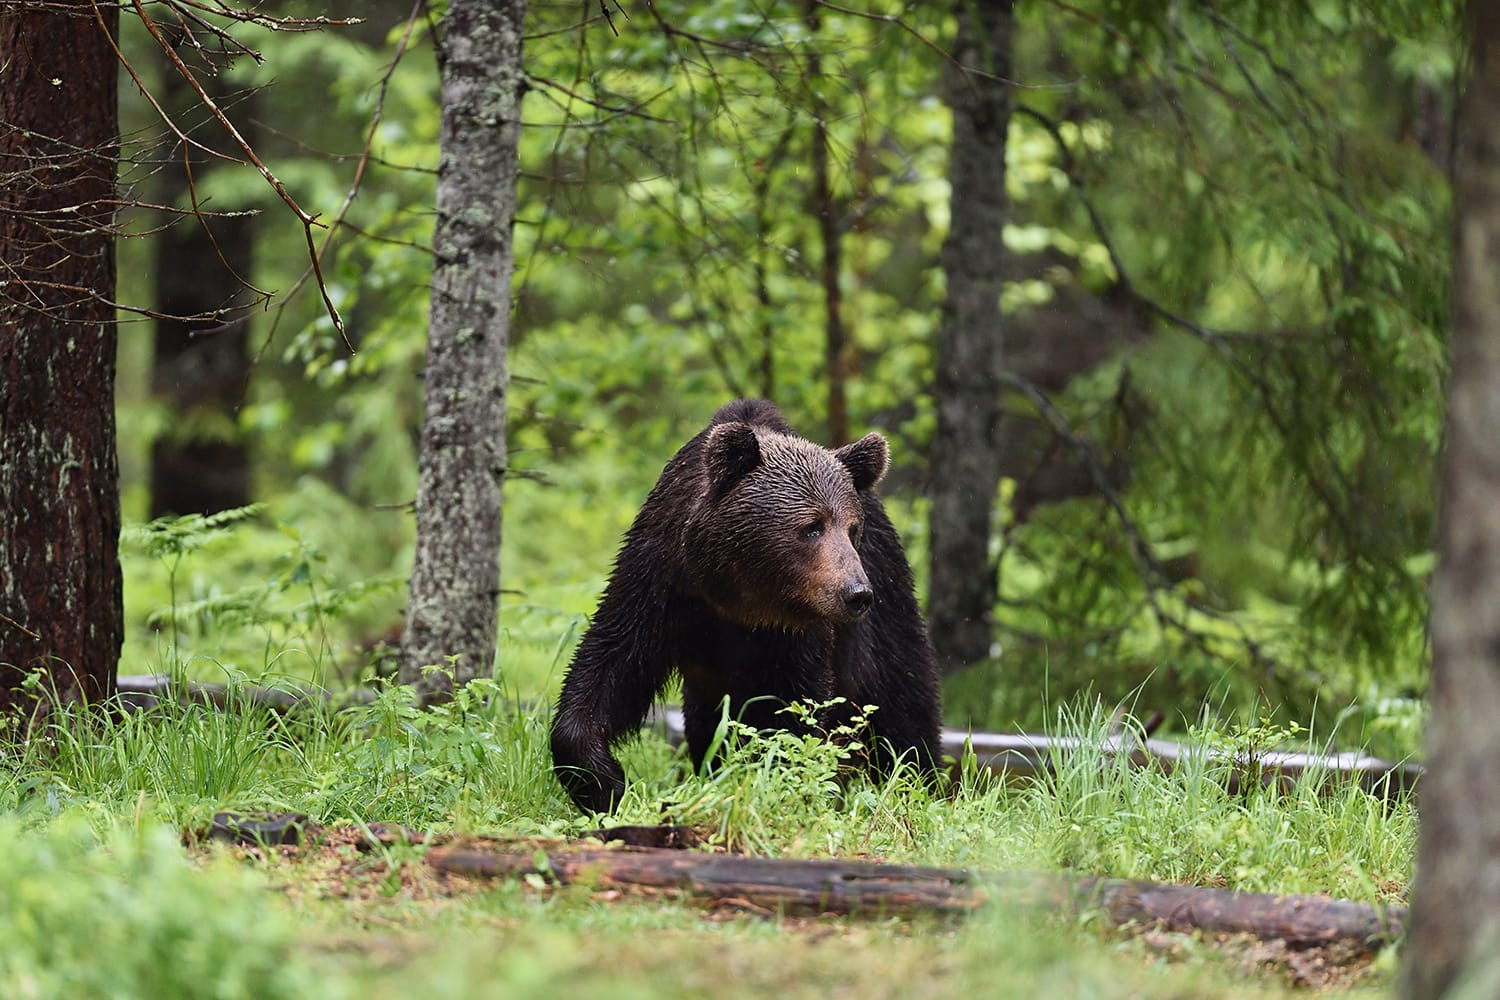 Brown bear walking in forest in Estonia